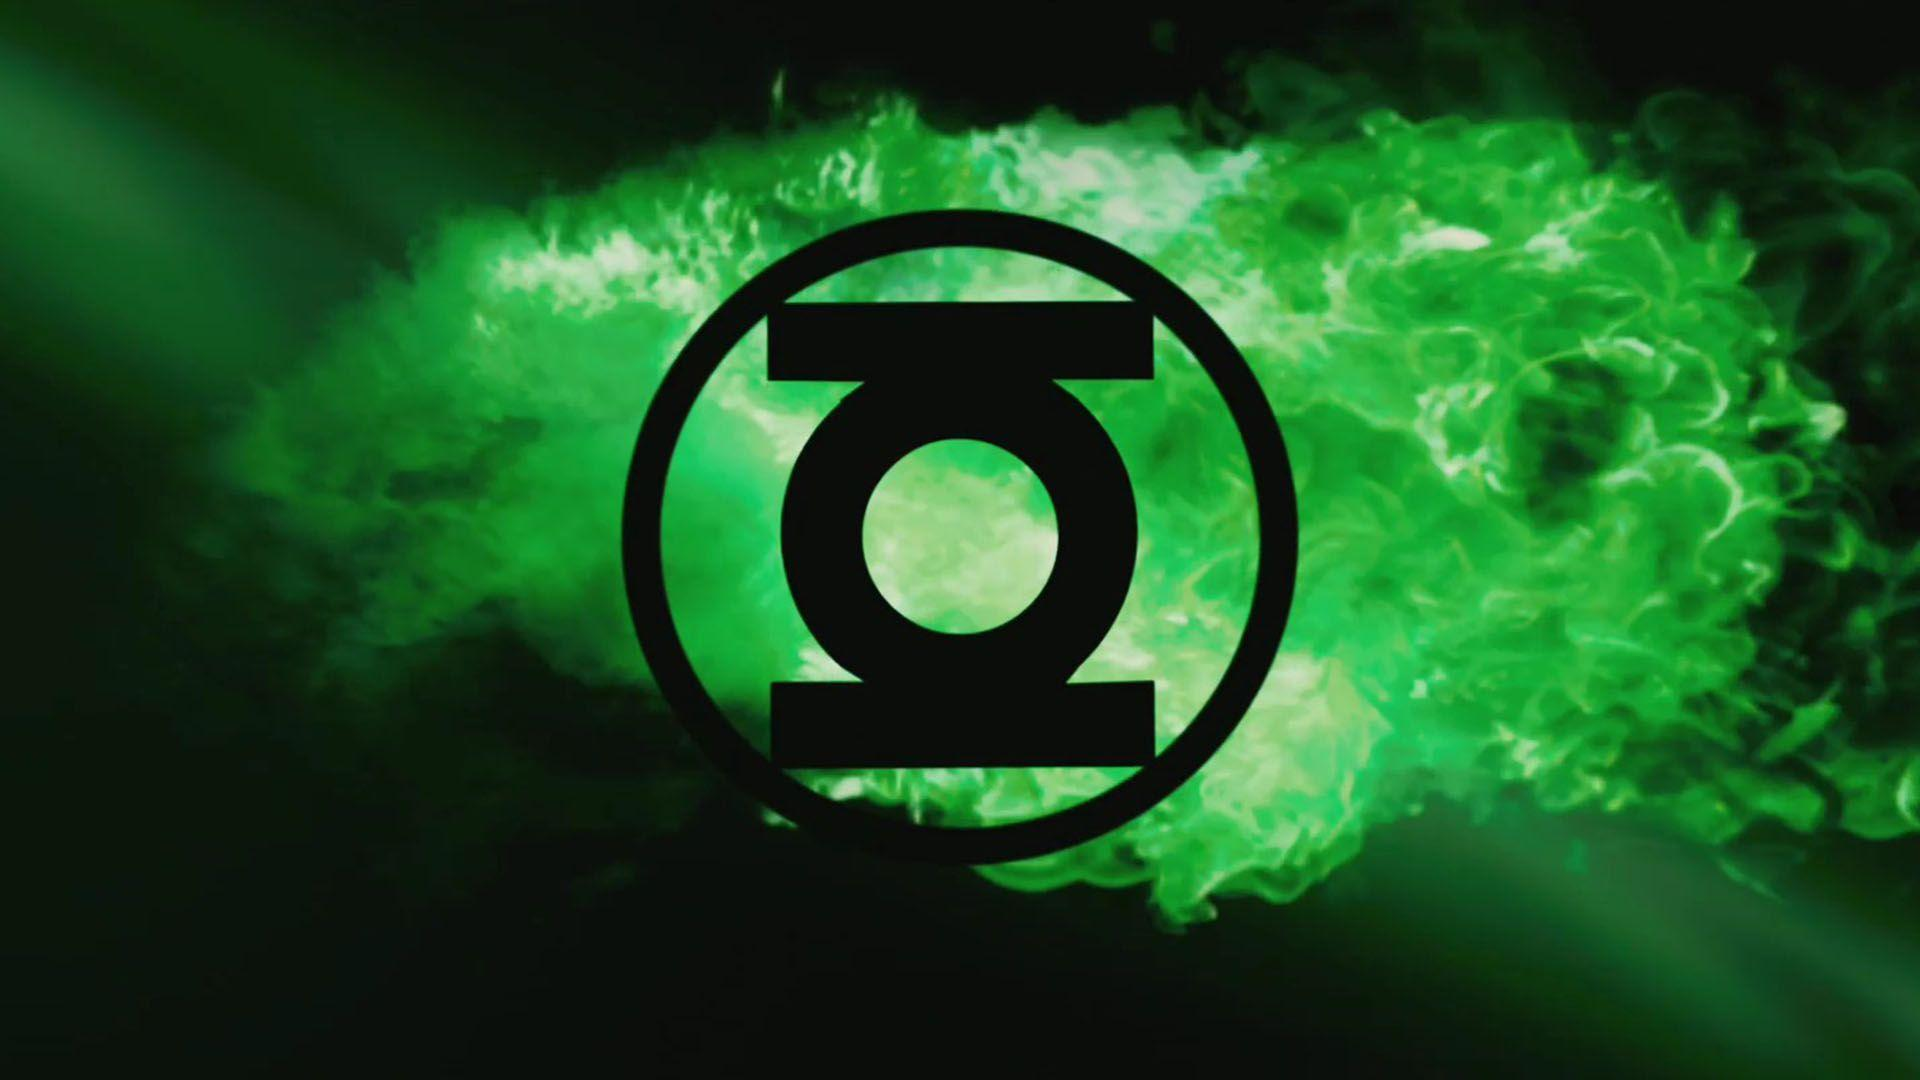 Wallpapers For > Black Green Lantern Wallpapers